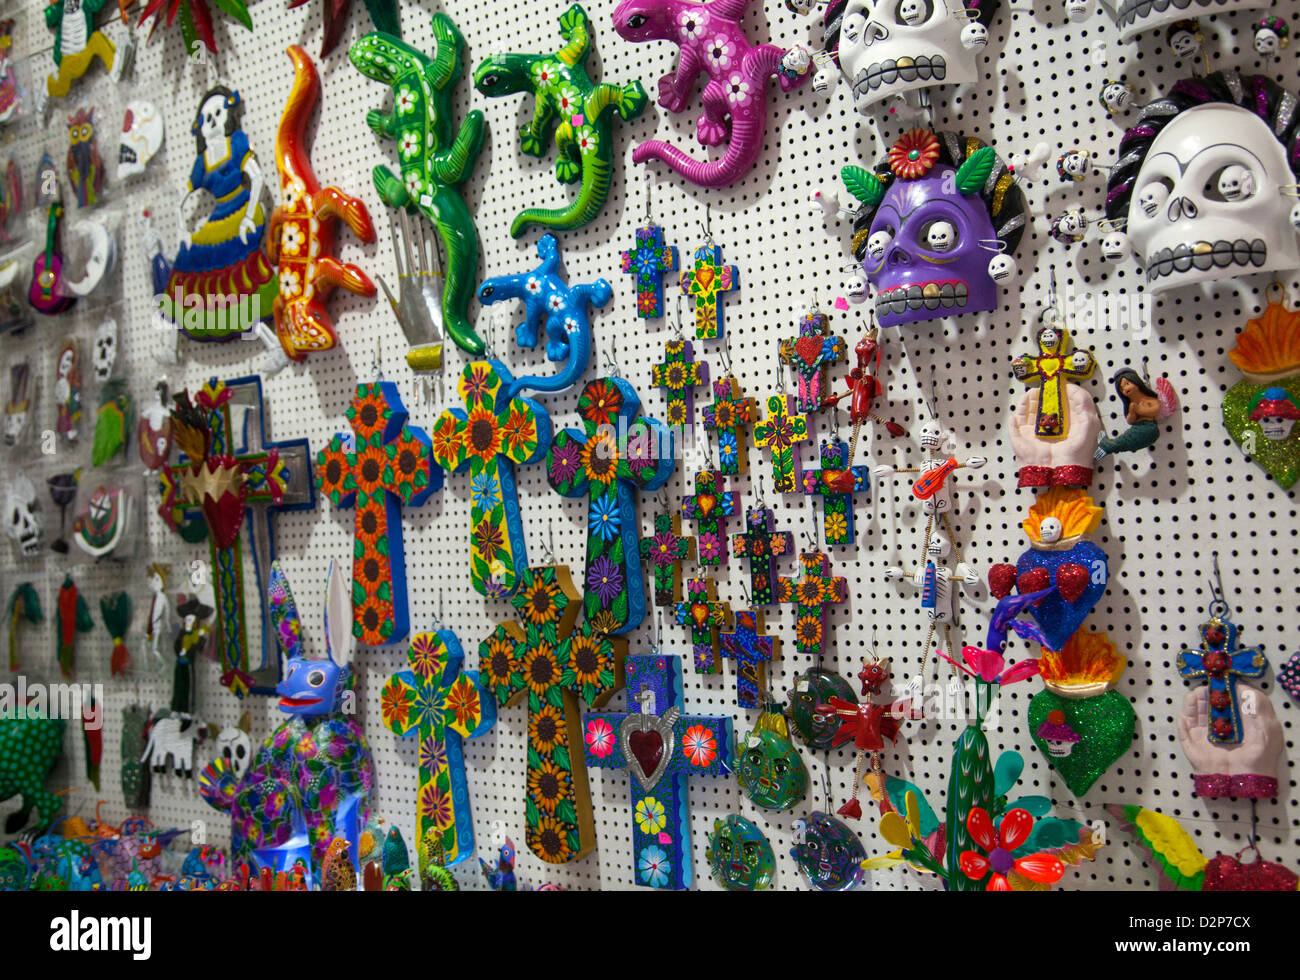 Stall Selling Crafts At Mercado Artesanias In Oaxaca Mexico Stock